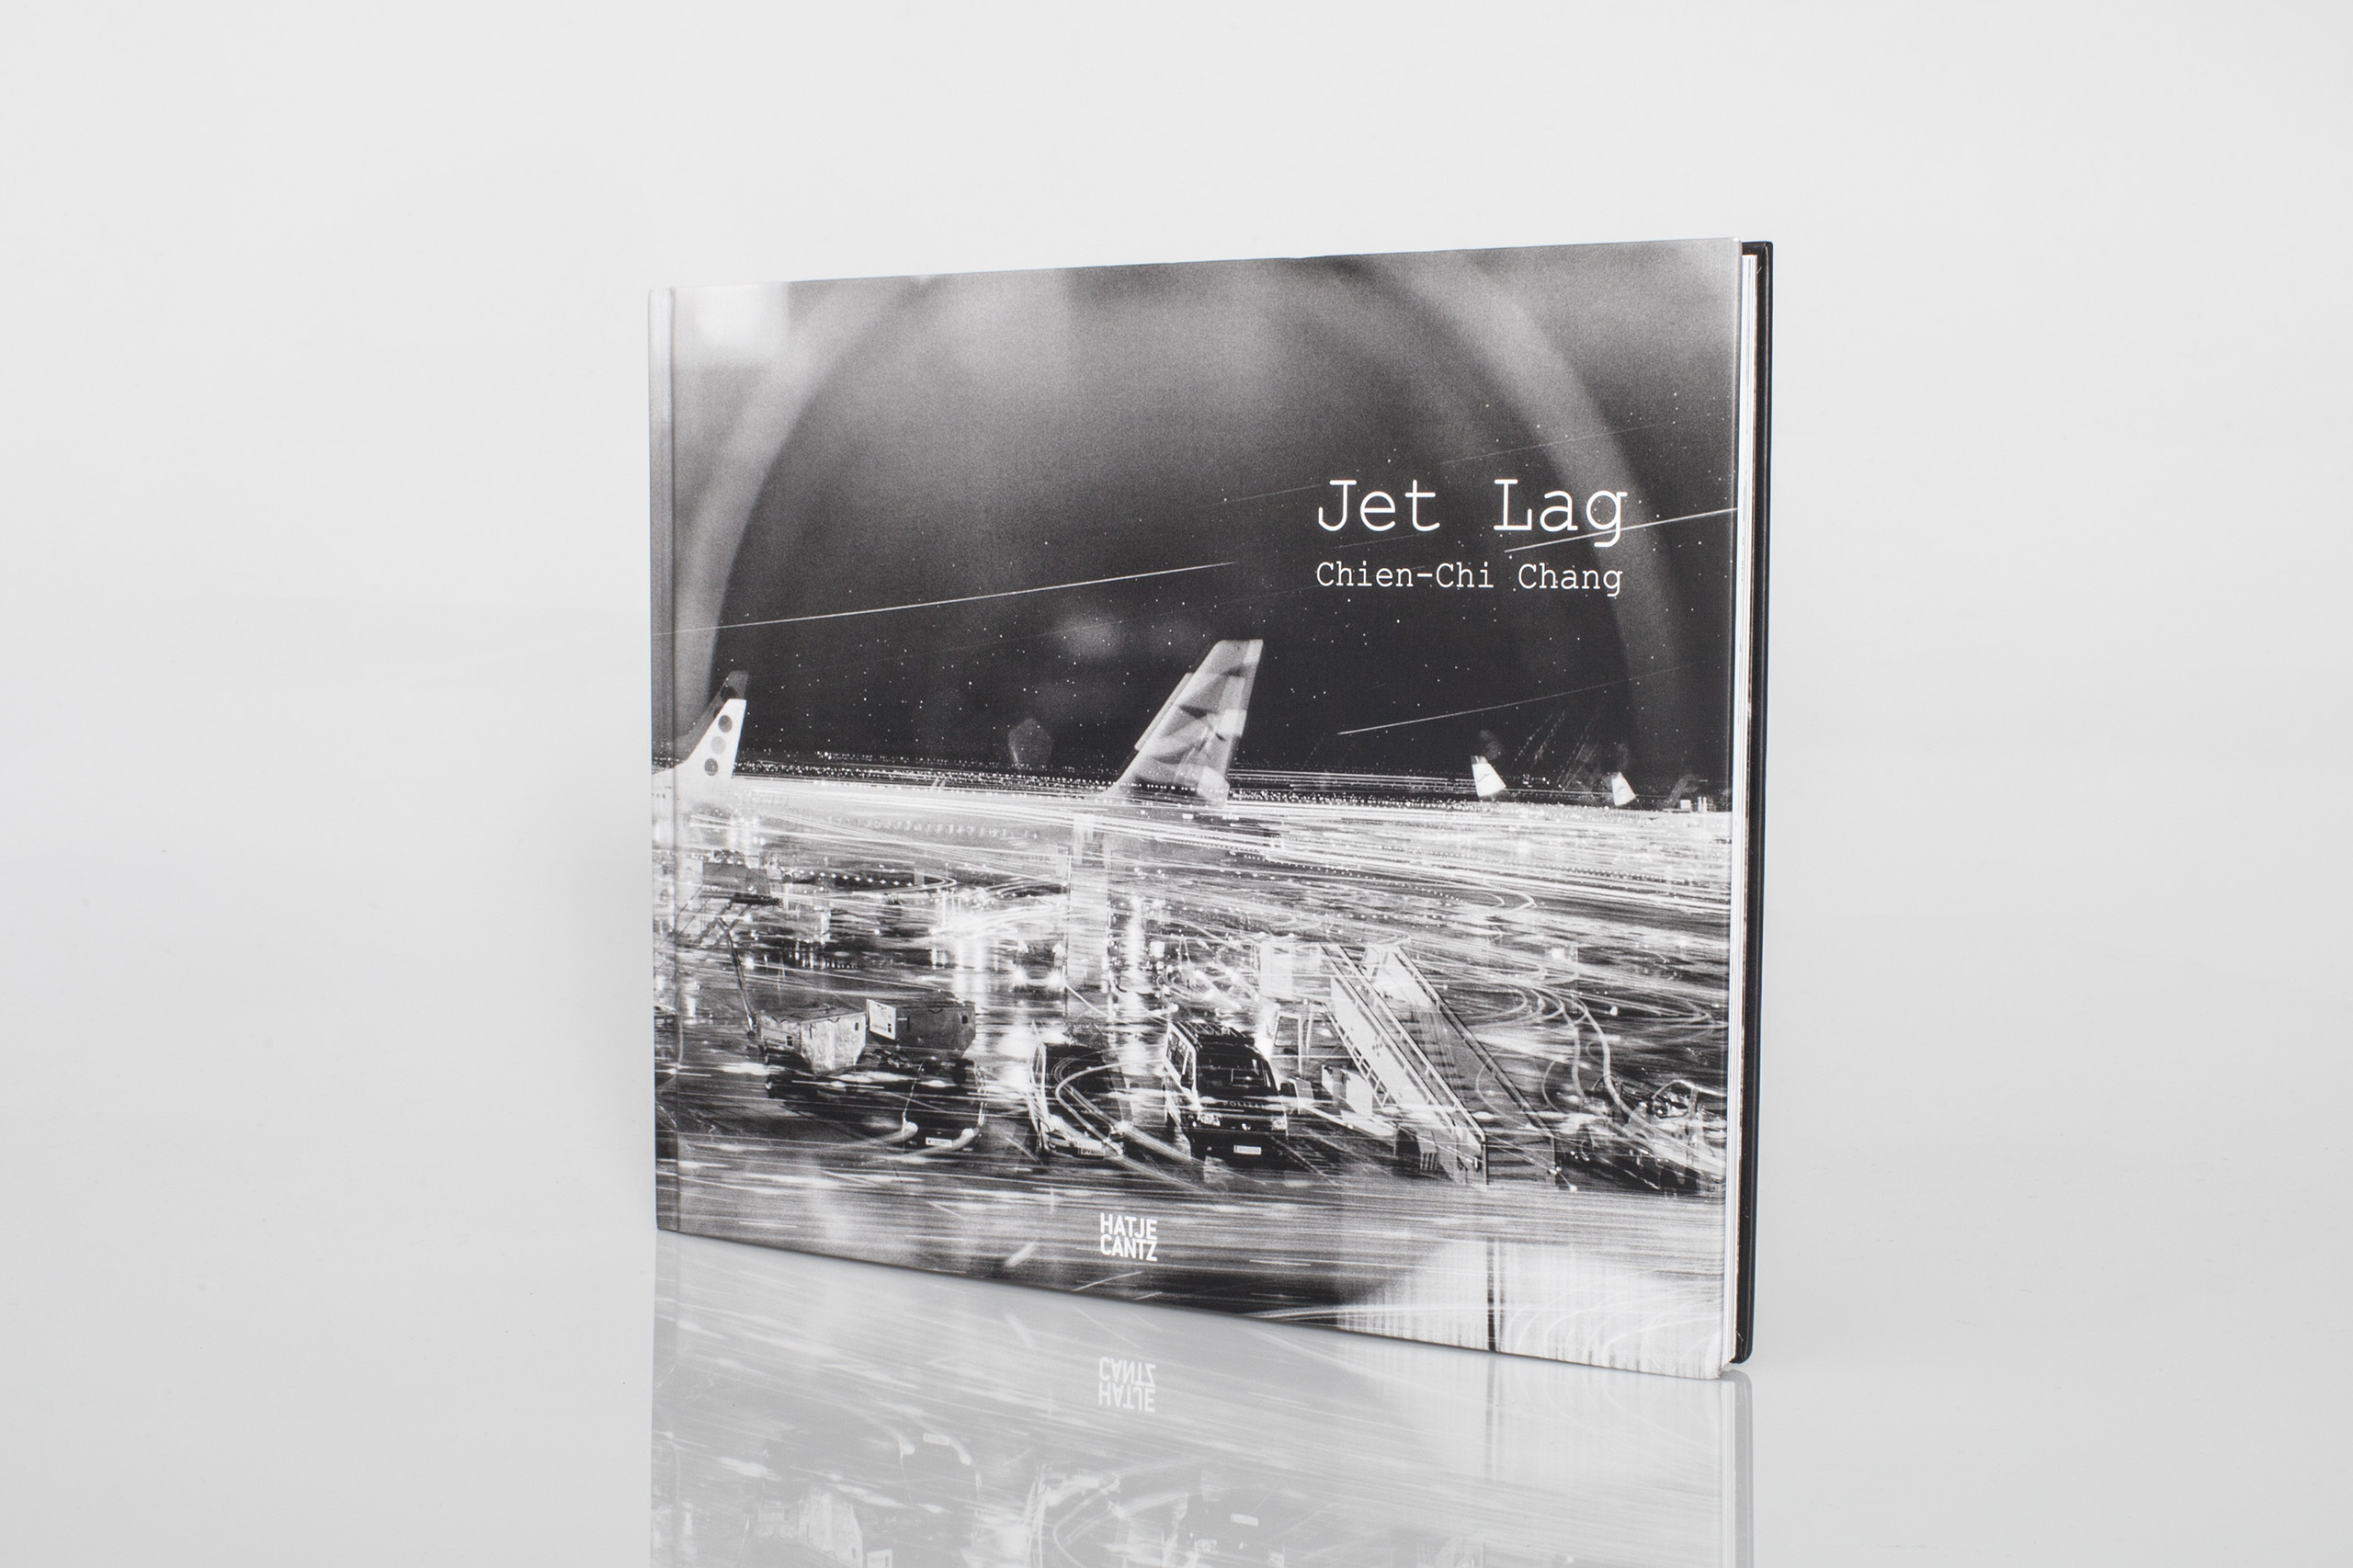 Jet Lag  by Chien-Chi ChangPublished by Hatje Cantz